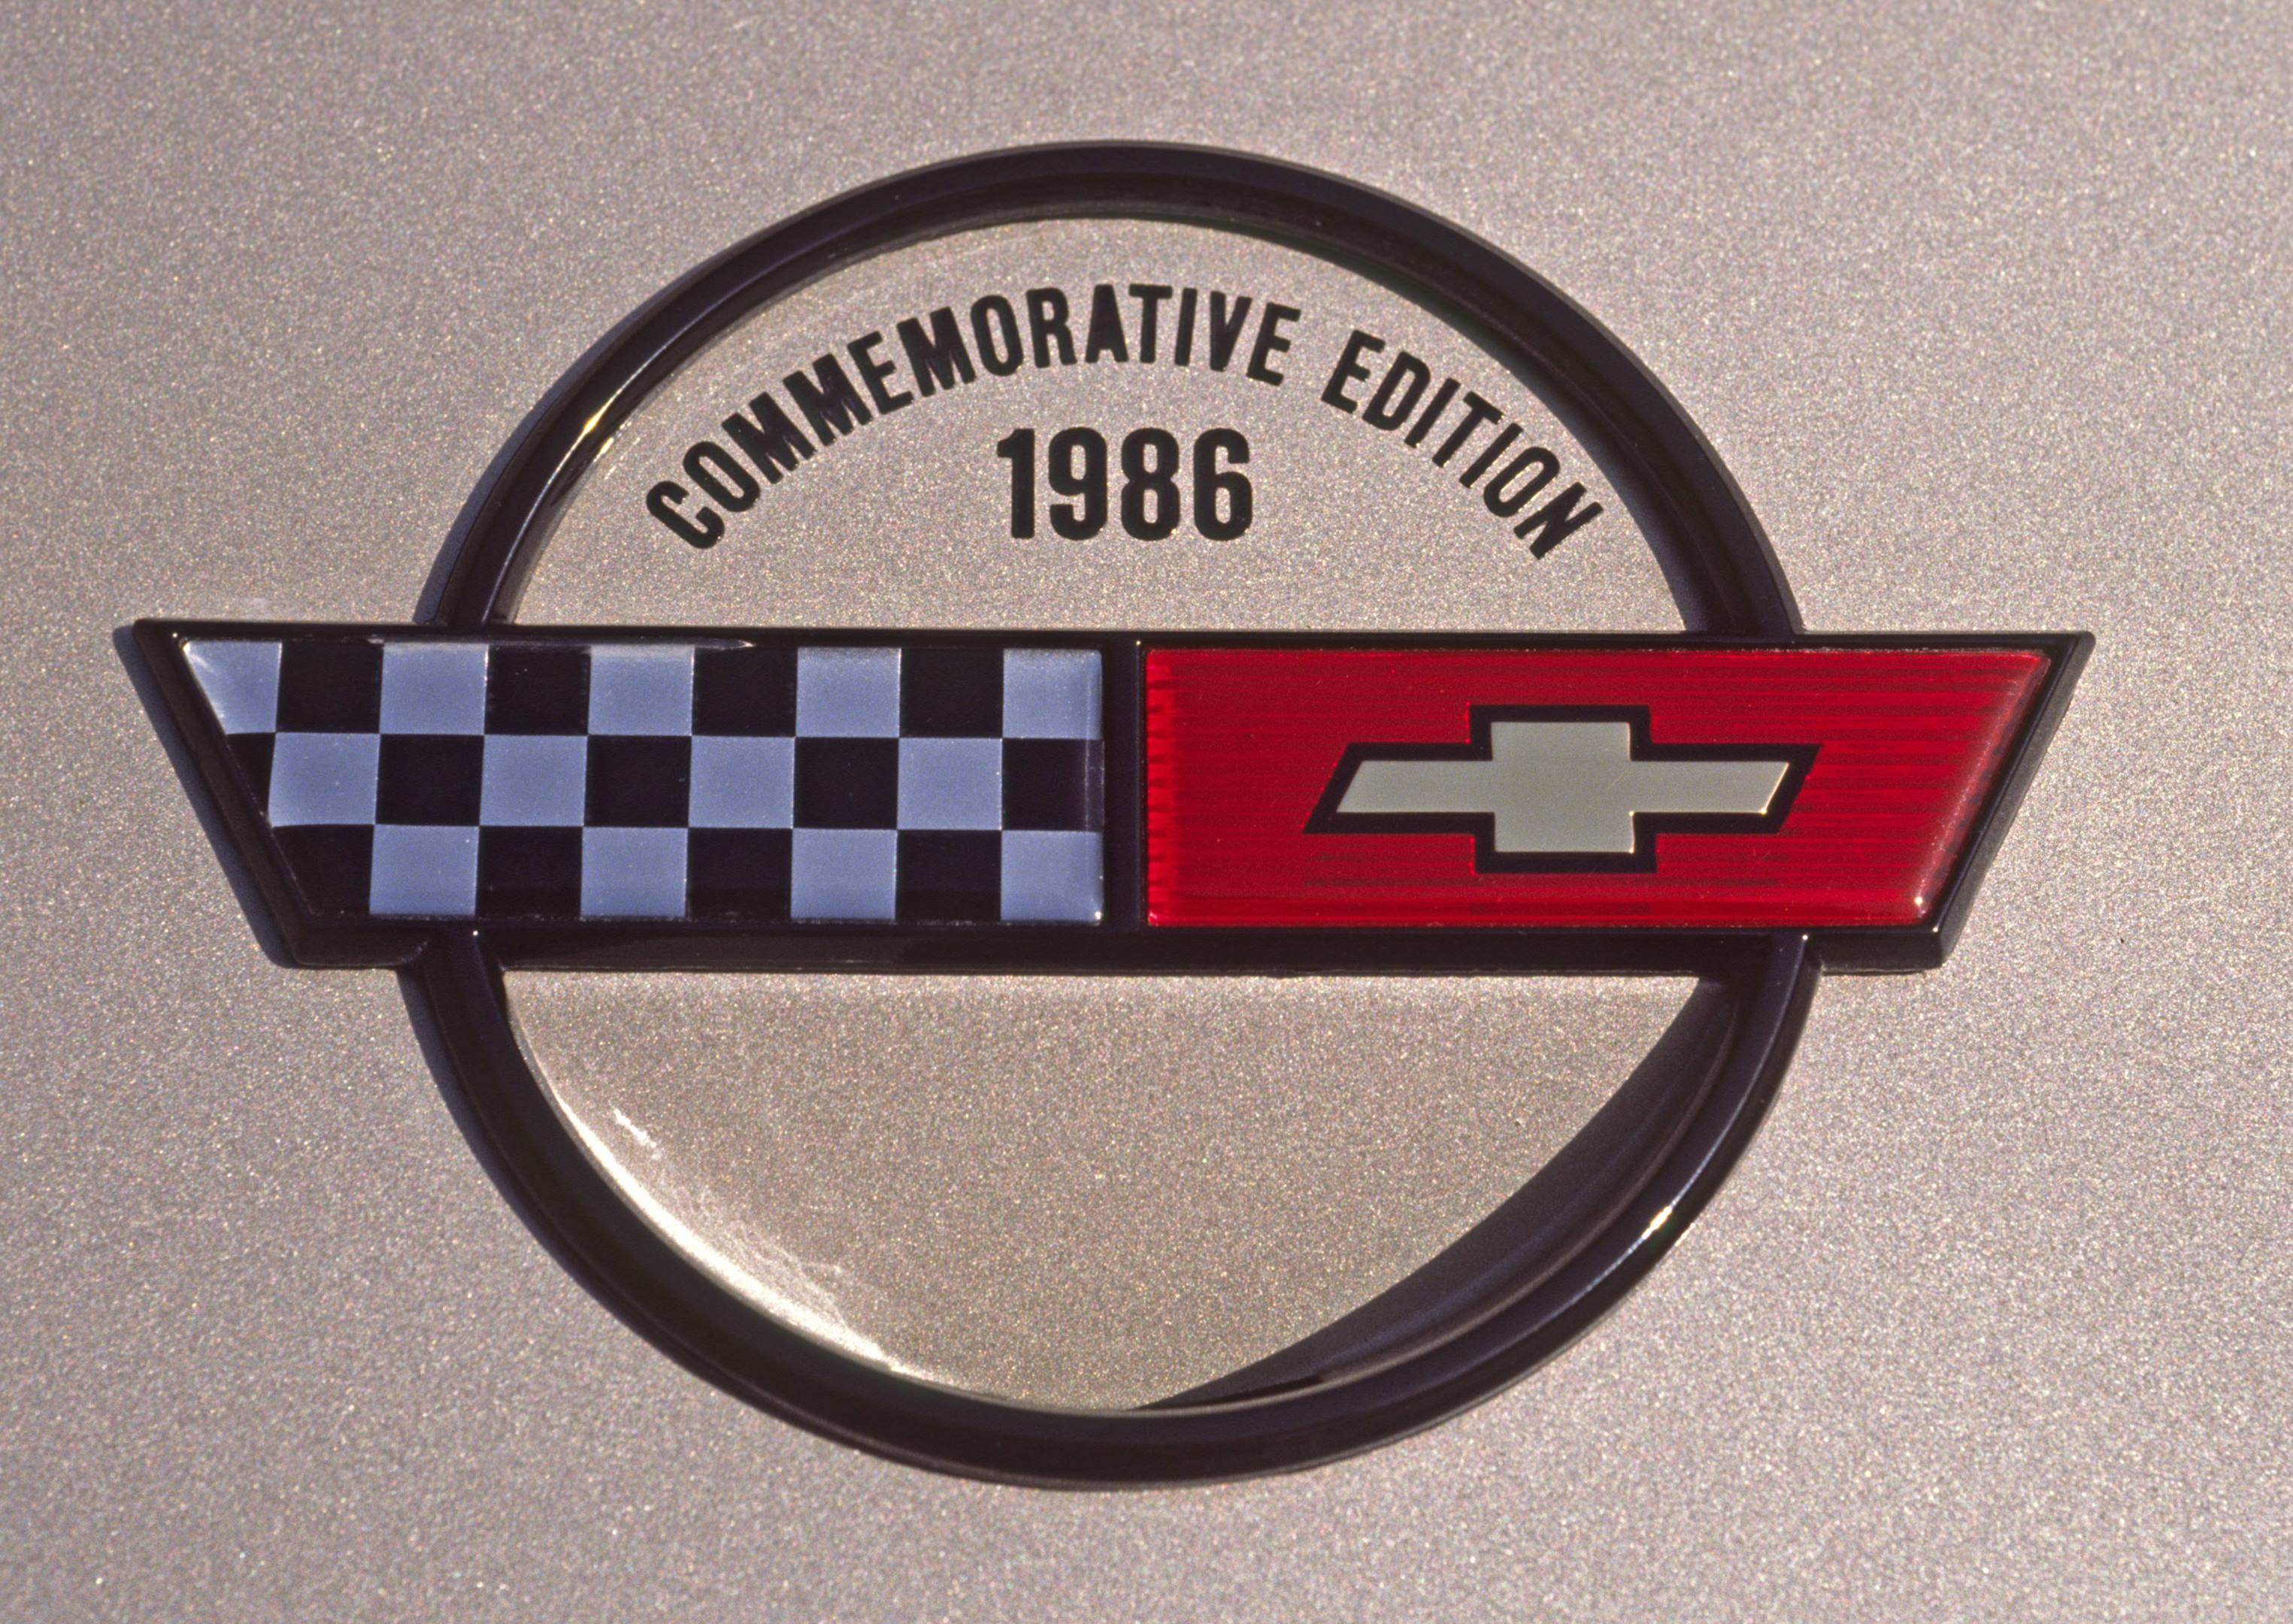 Malcolm Konner Corvette badge